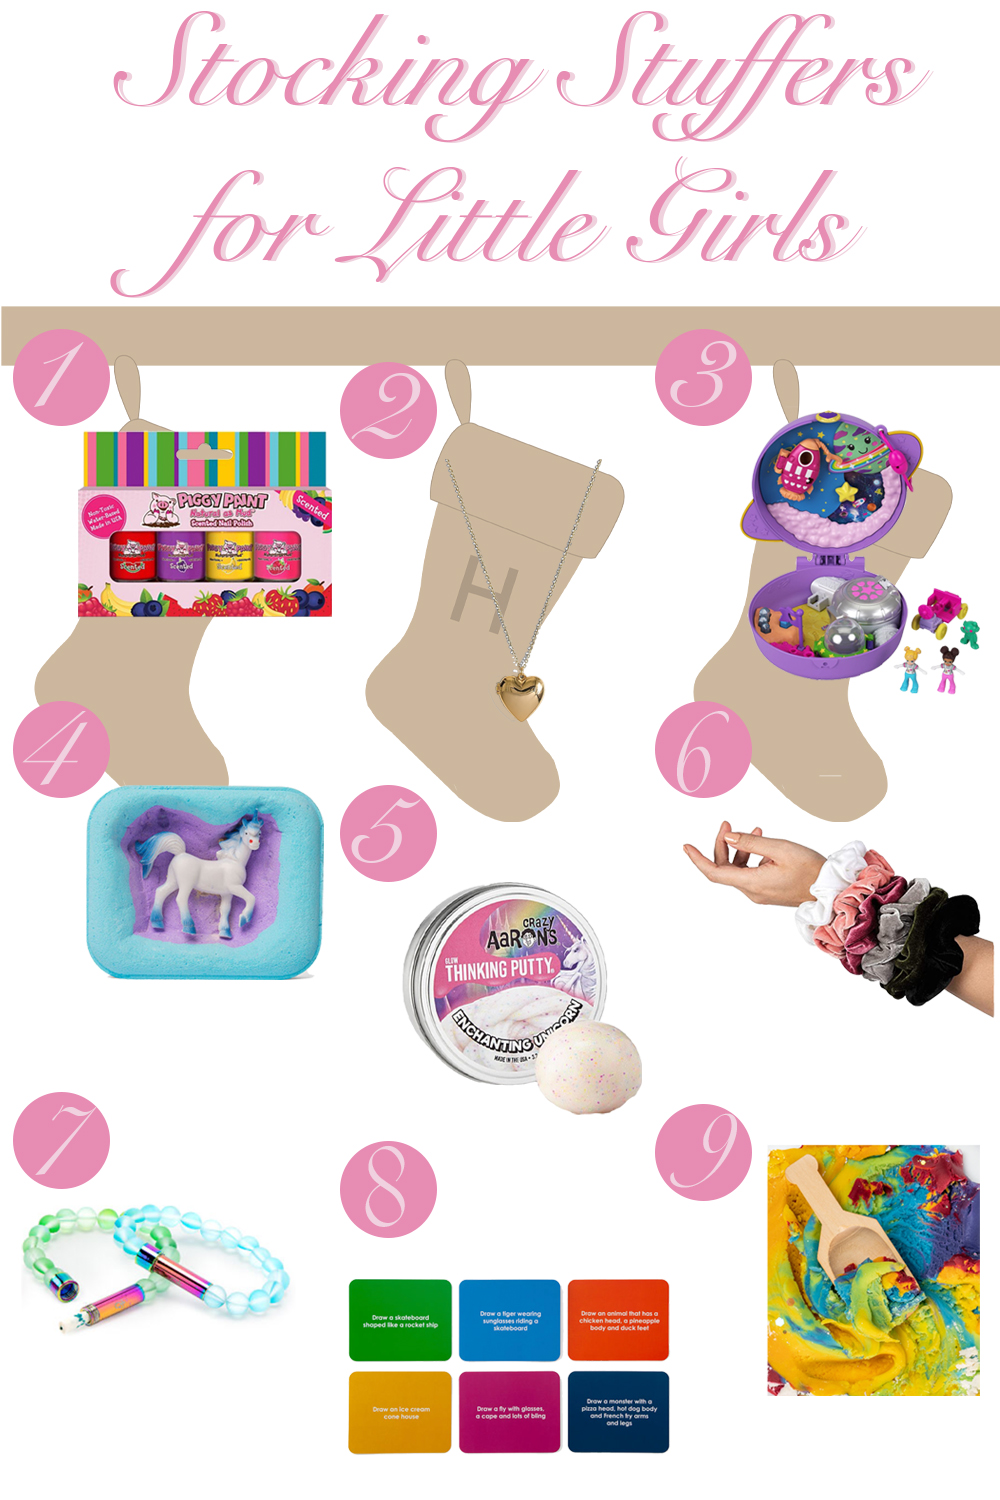 Holiday Gift Guide: Stocking Stuffers for Little Girls